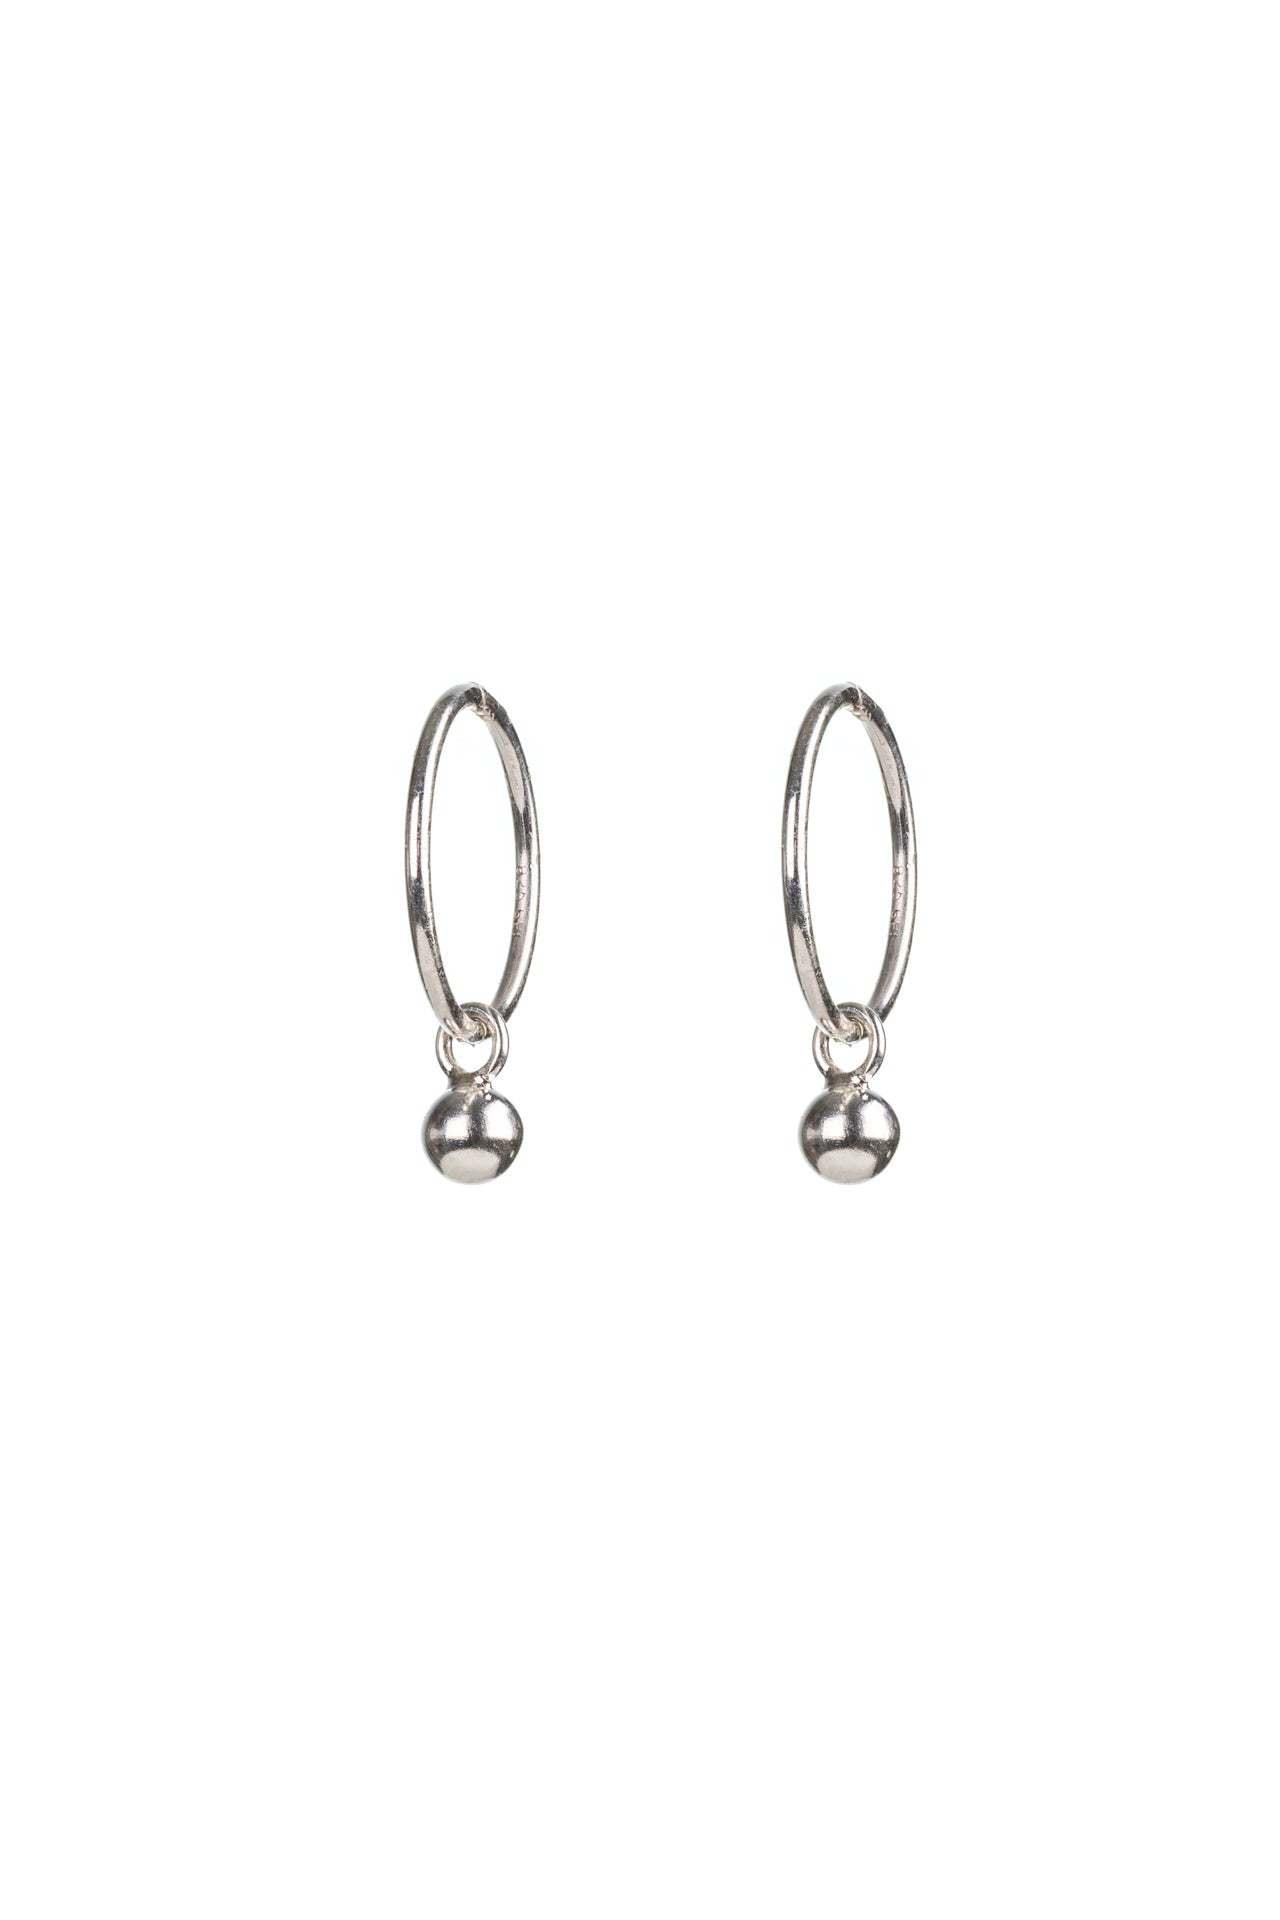 Silver Ball Hinged Hoops